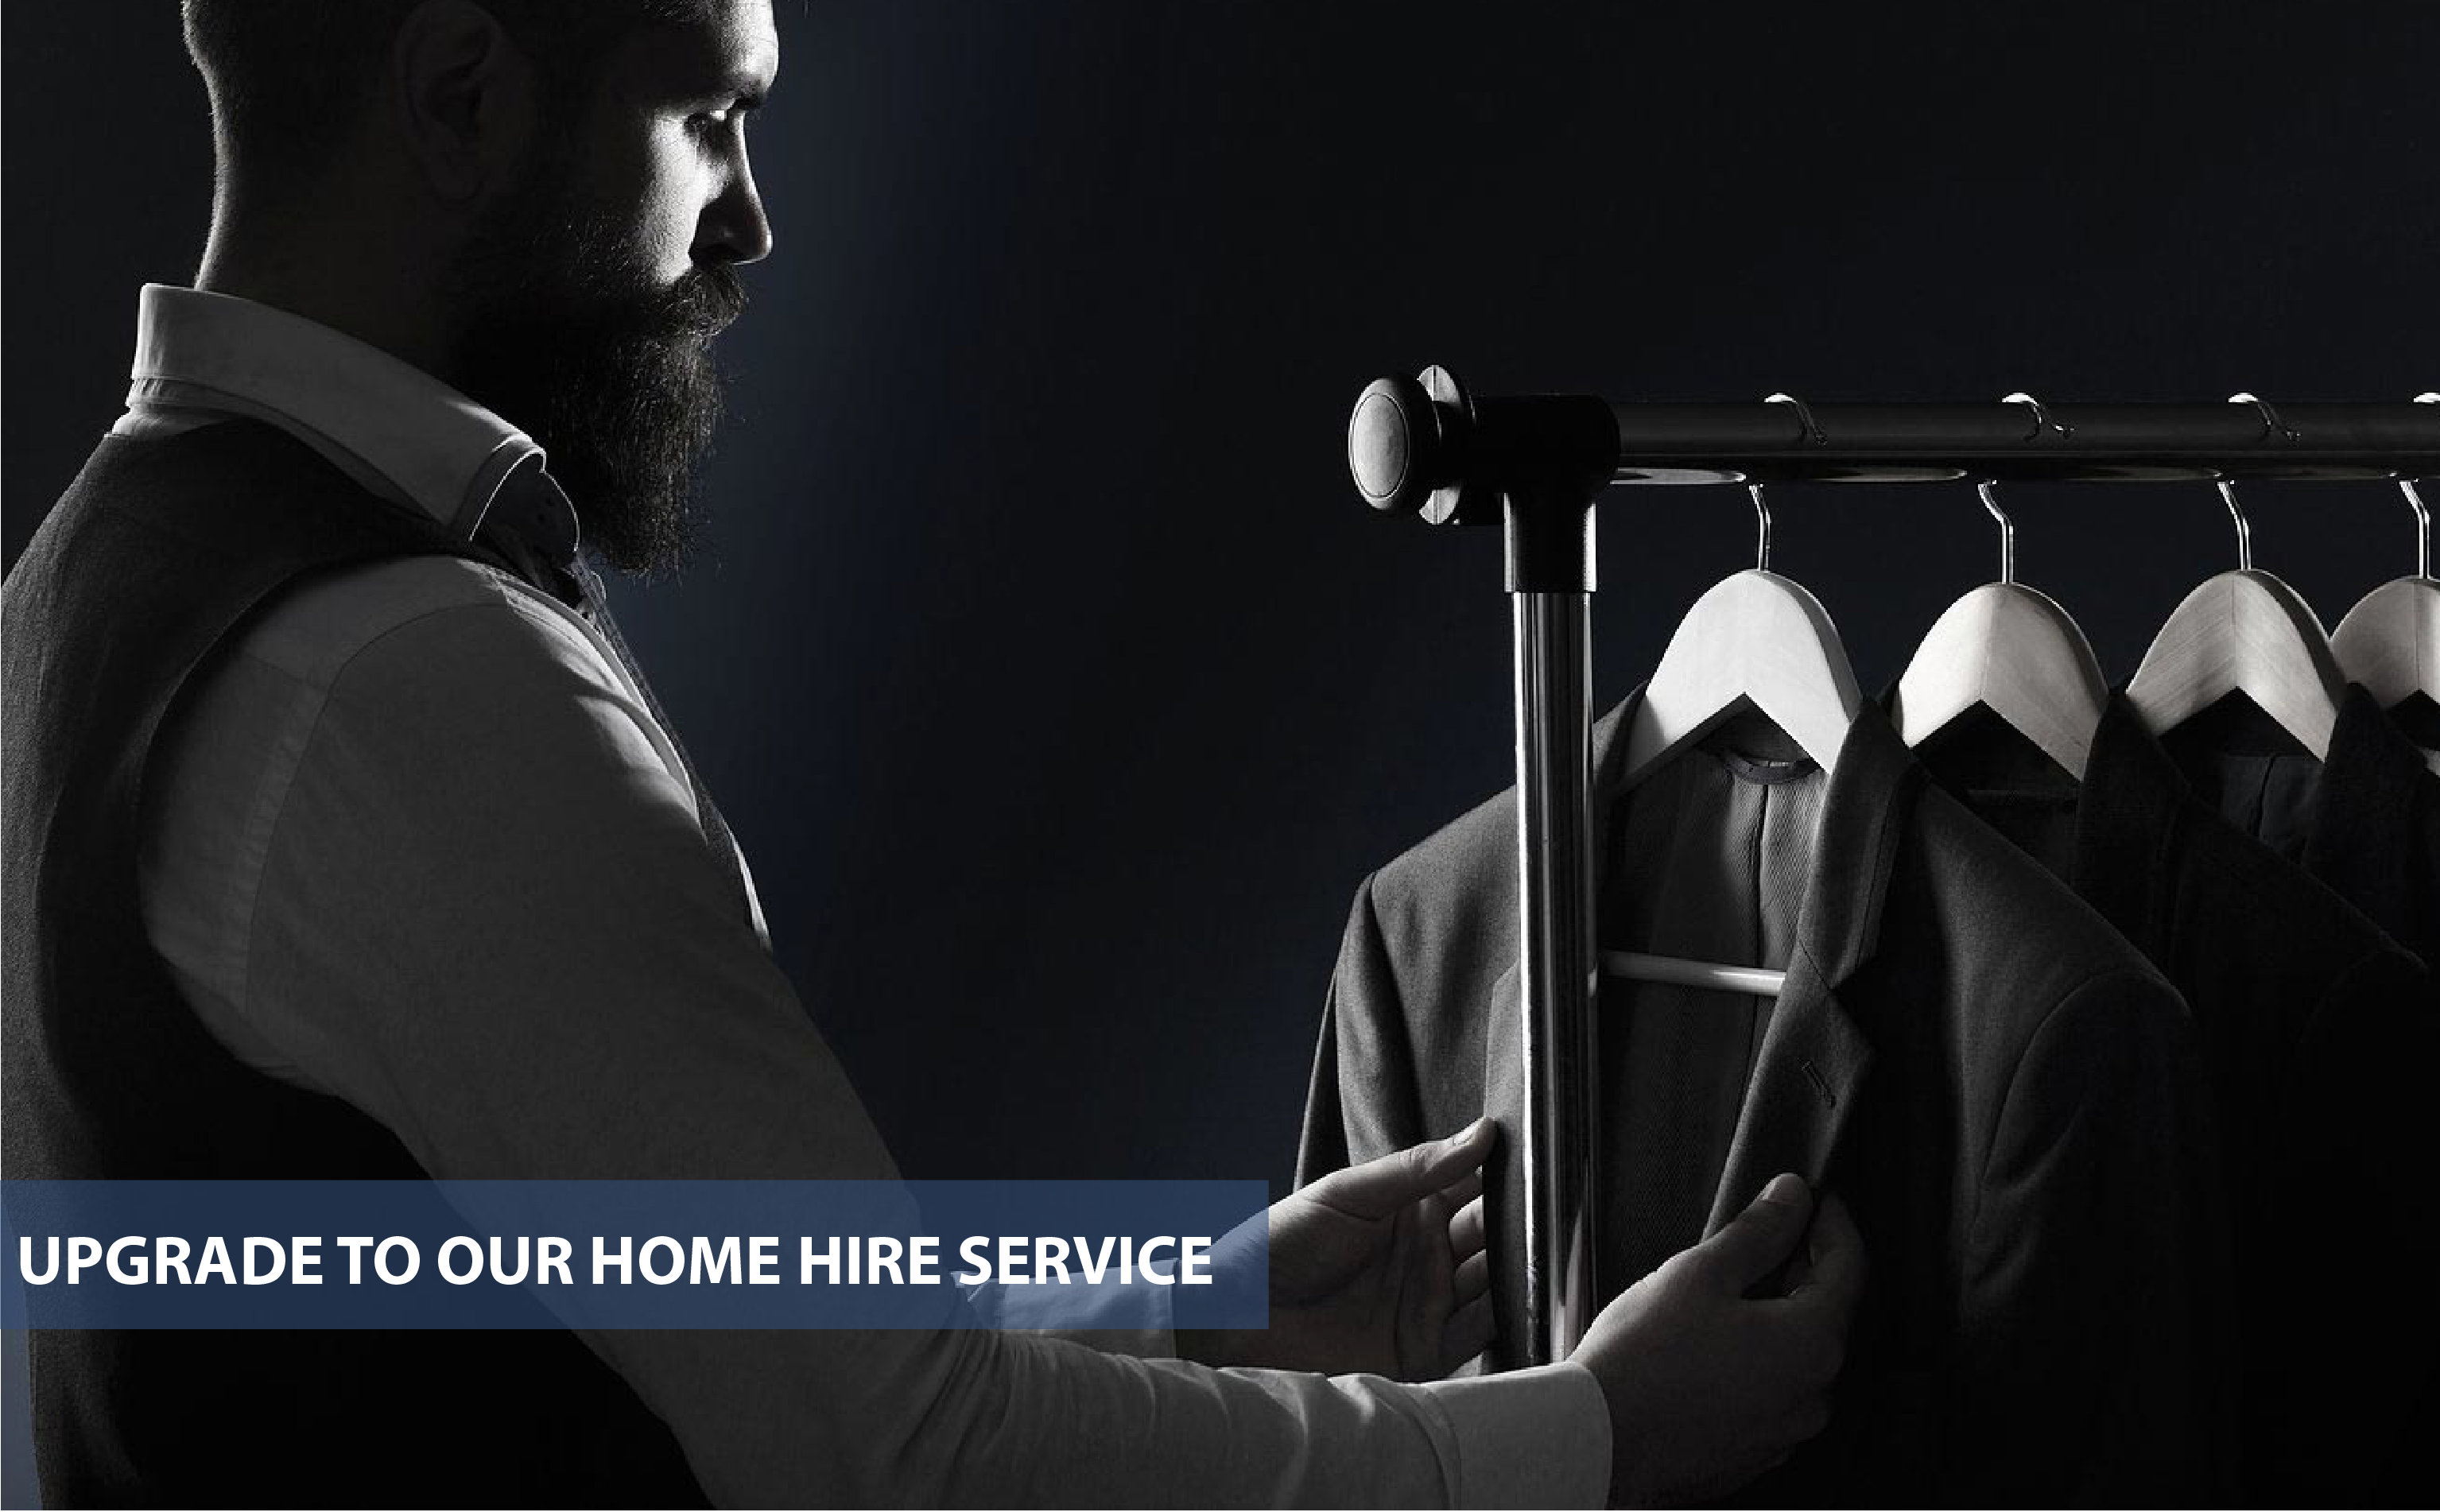 UPGRADE TO OUR HOME HIRE SERVICE FROM £49